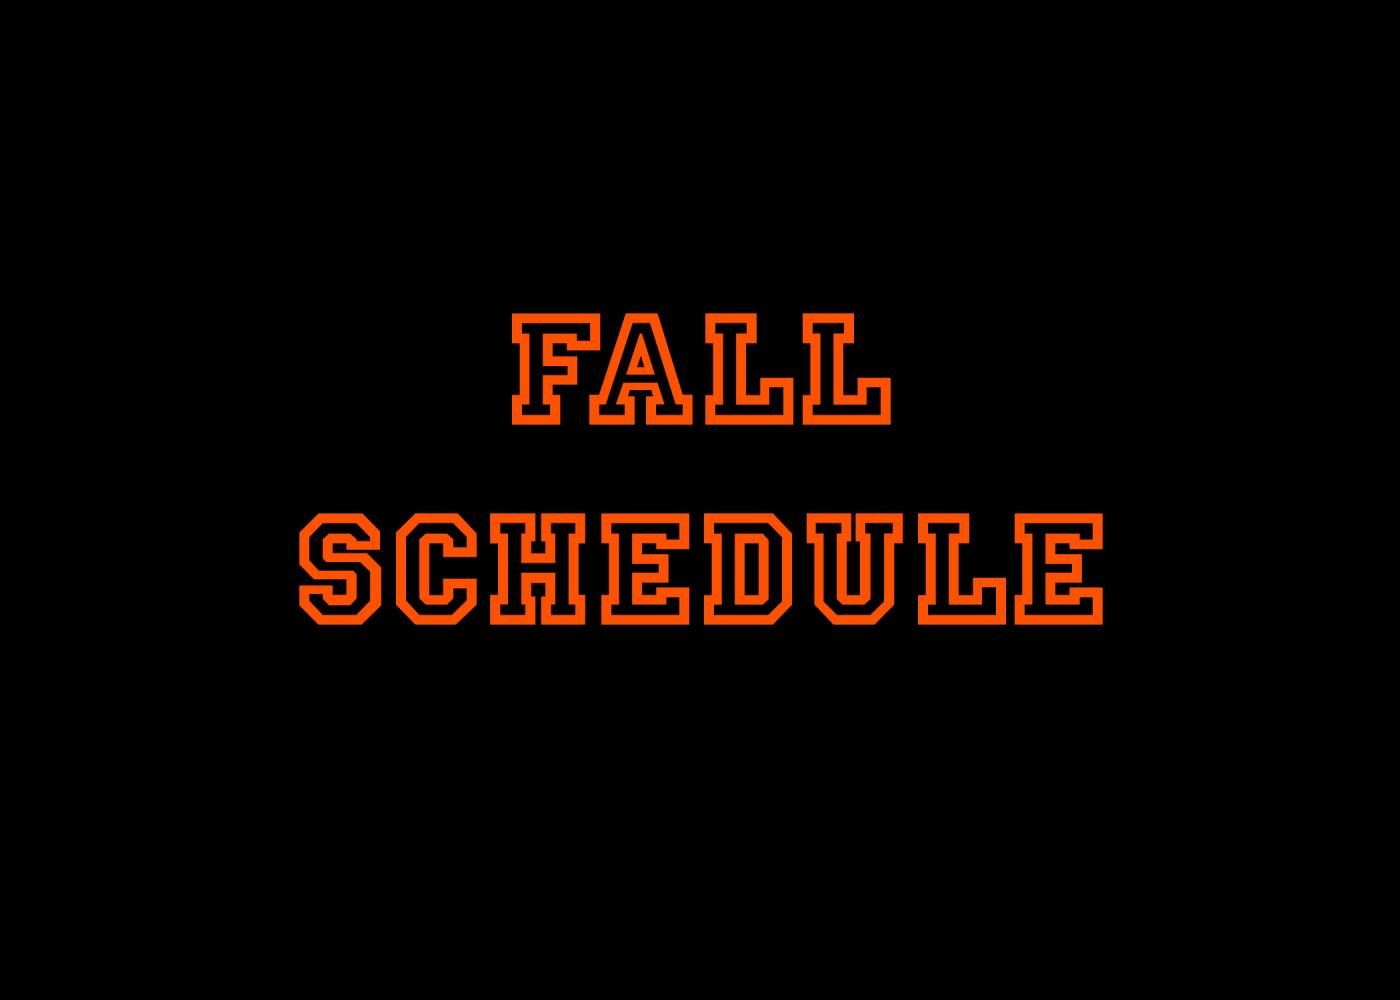 Fall event schedule